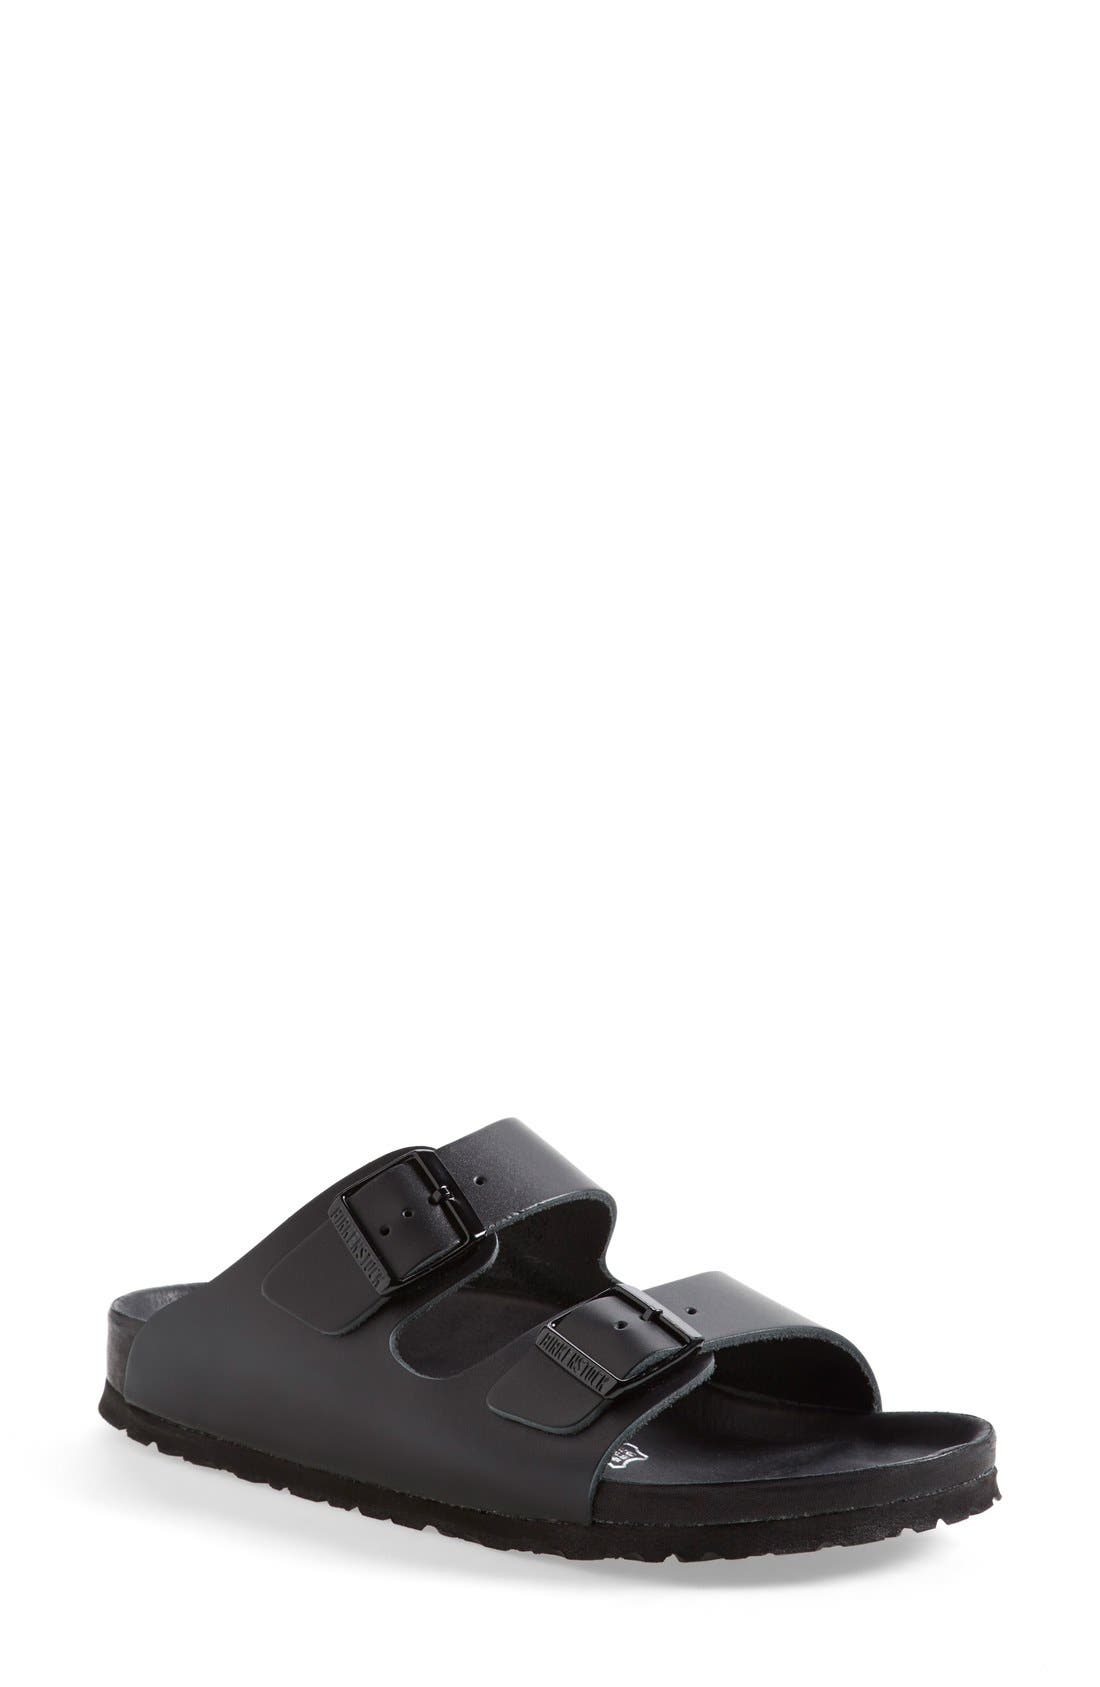 'Monterey' Leather Sandal,                             Main thumbnail 1, color,                             Black